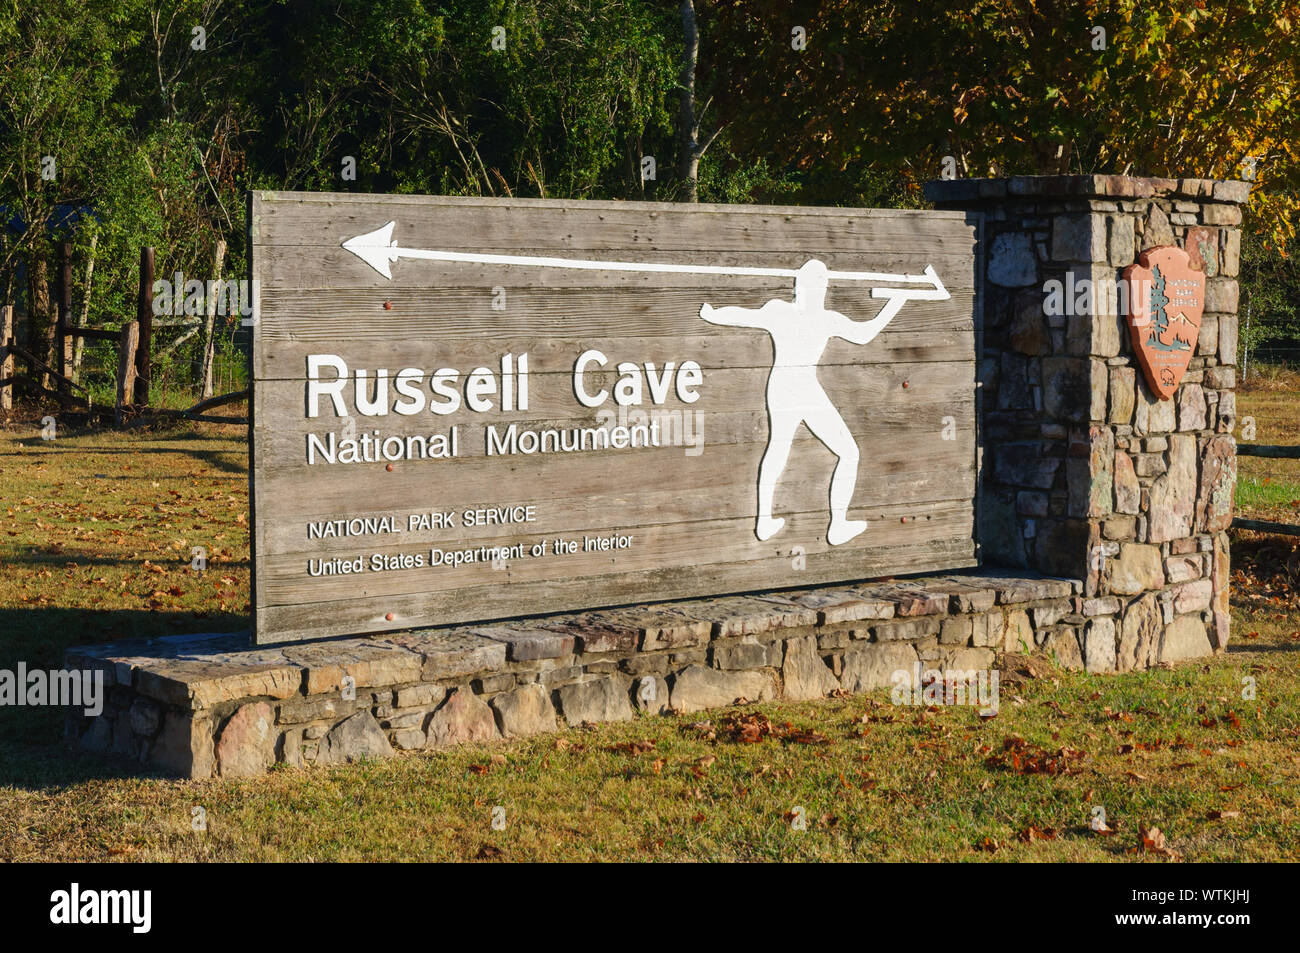 Russell Cave National Monument's Welcome Sign Stock Photo